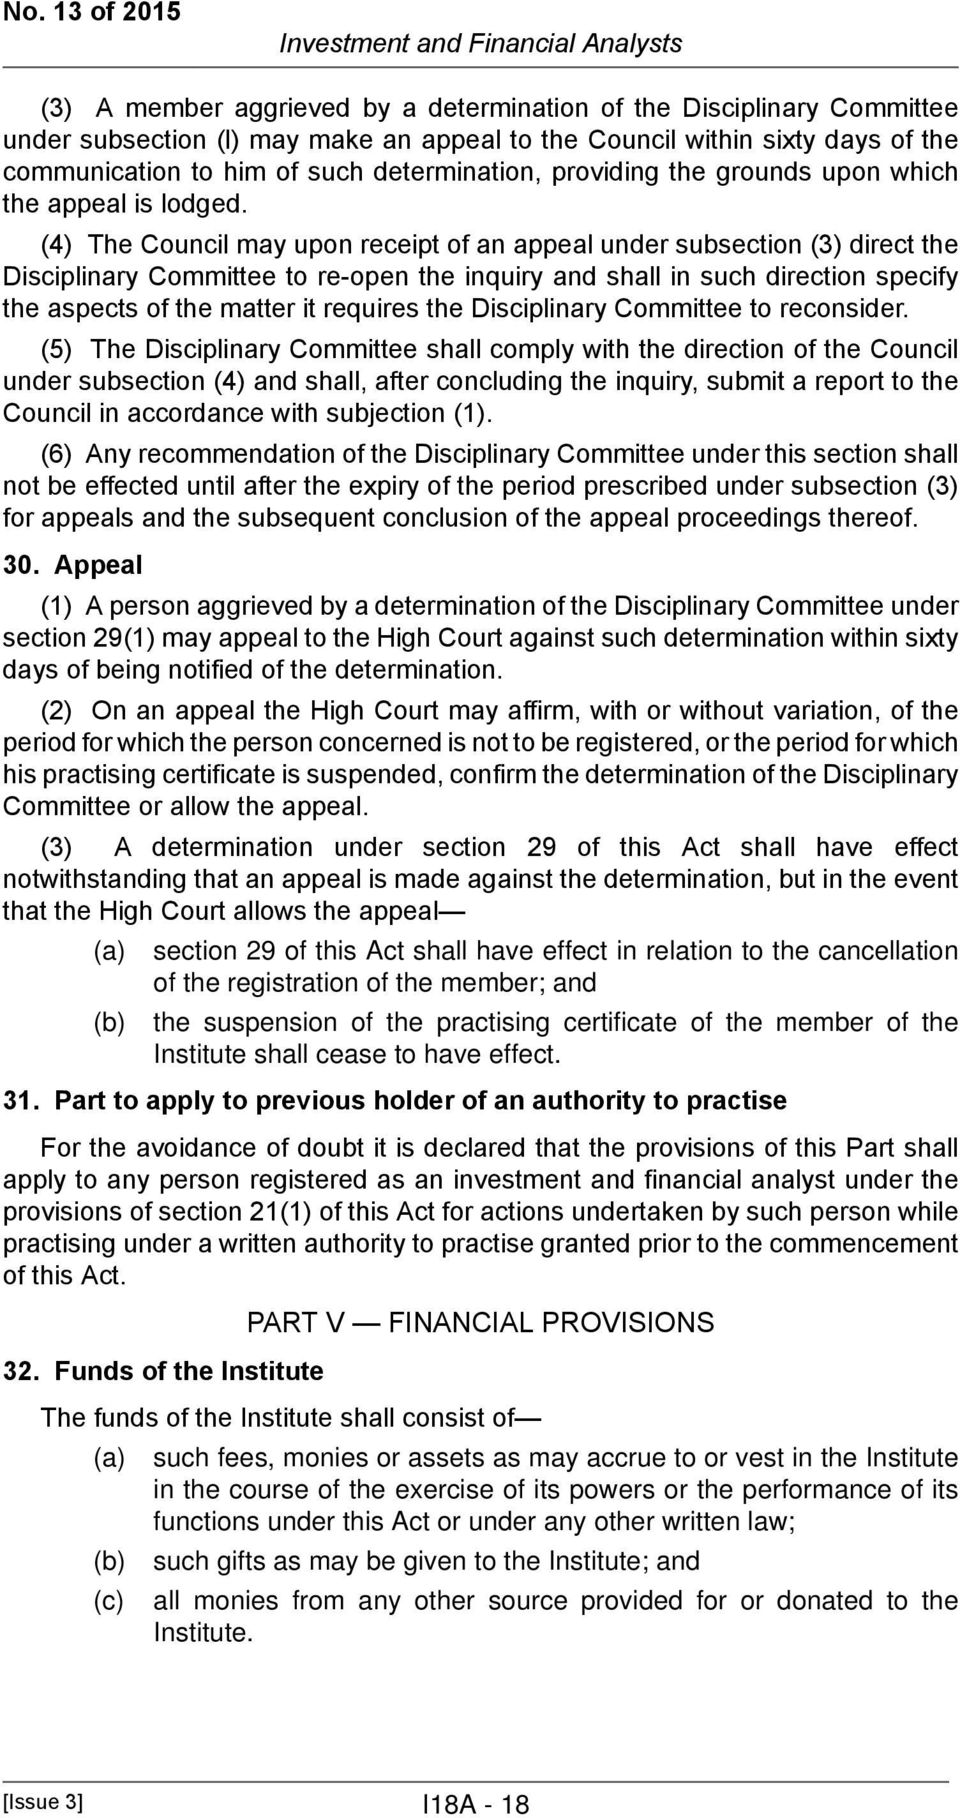 (4) The Council may upon receipt of an appeal under subsection (3) direct the Disciplinary Committee to re-open the inquiry and shall in such direction specify the aspects of the matter it requires